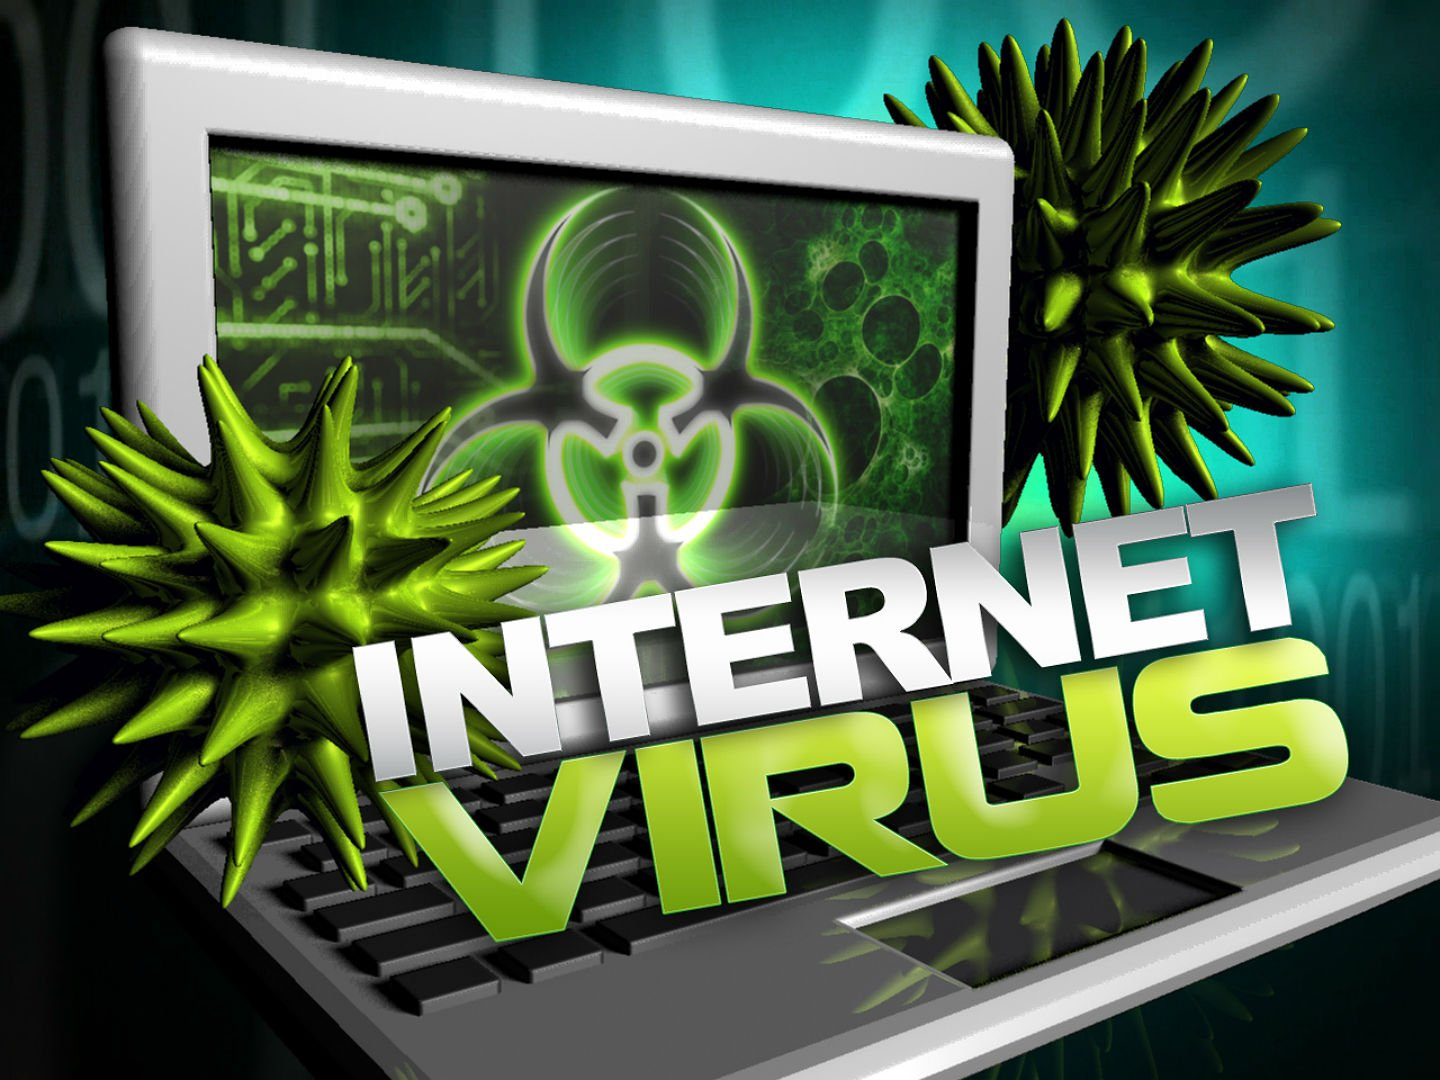 computer virus danger hacking hacker internet sadic (60)